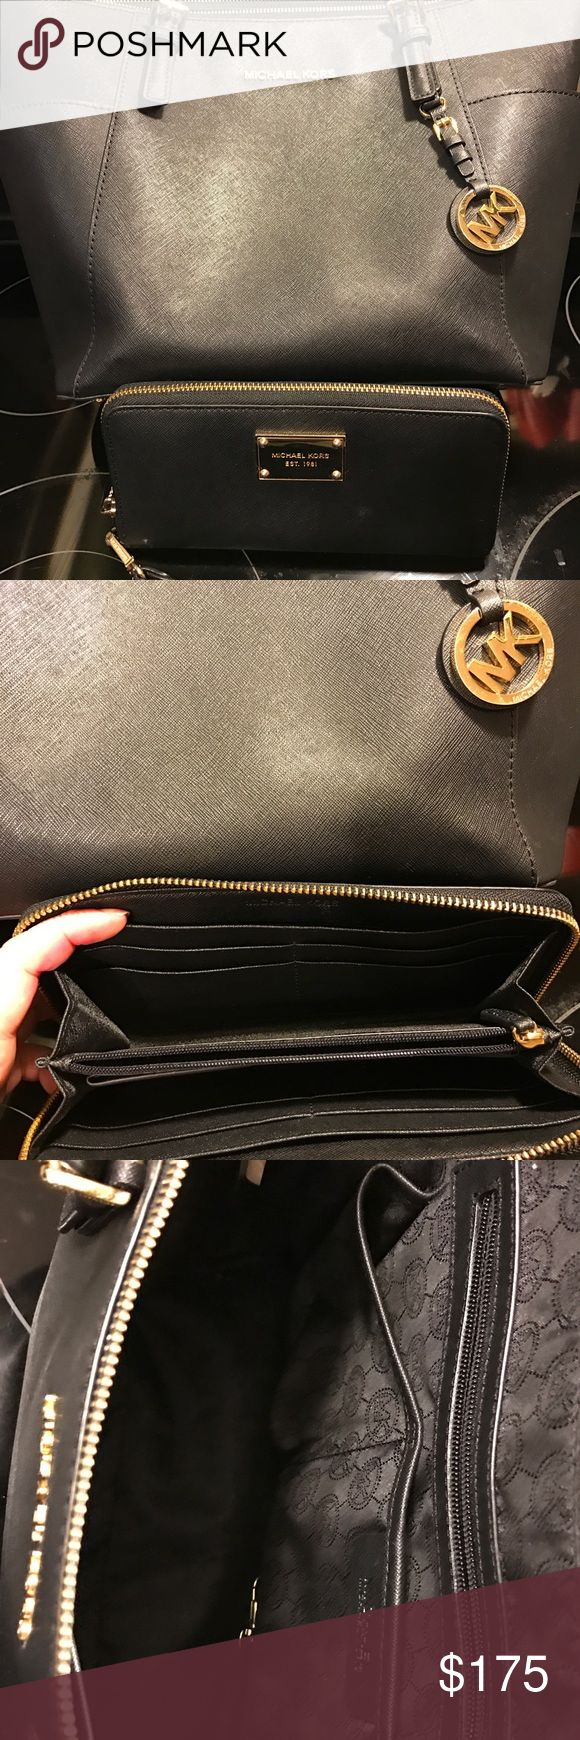 Michael Kors black bag Medium sized black Michael Kors purse and wallet. Both were originally purchased from this site. Both have some signs of use but no major blemishes. Smoke free home! I am reselling because I am running out of closet space :) Michael Kors Bags Shoulder Bags